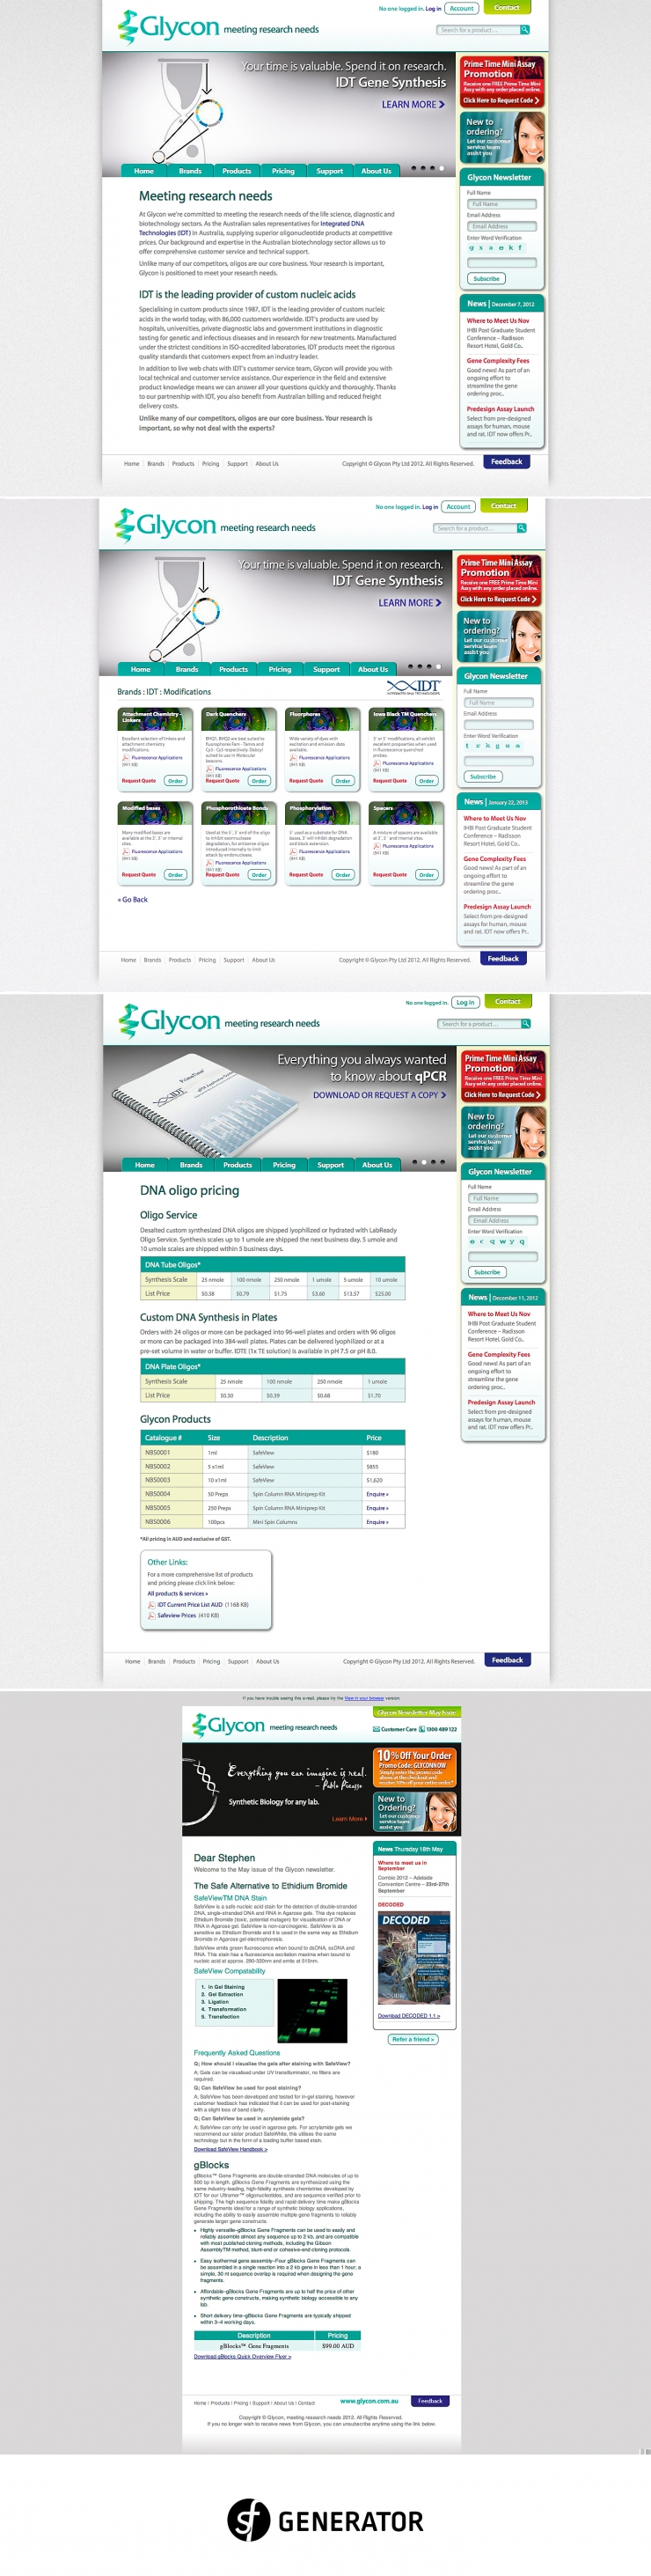 Web design and development of the glycon website and email template web design and development of the glycon website and email template adobe business catalyst was used as the platform to manage client relationships and cheaphphosting Images